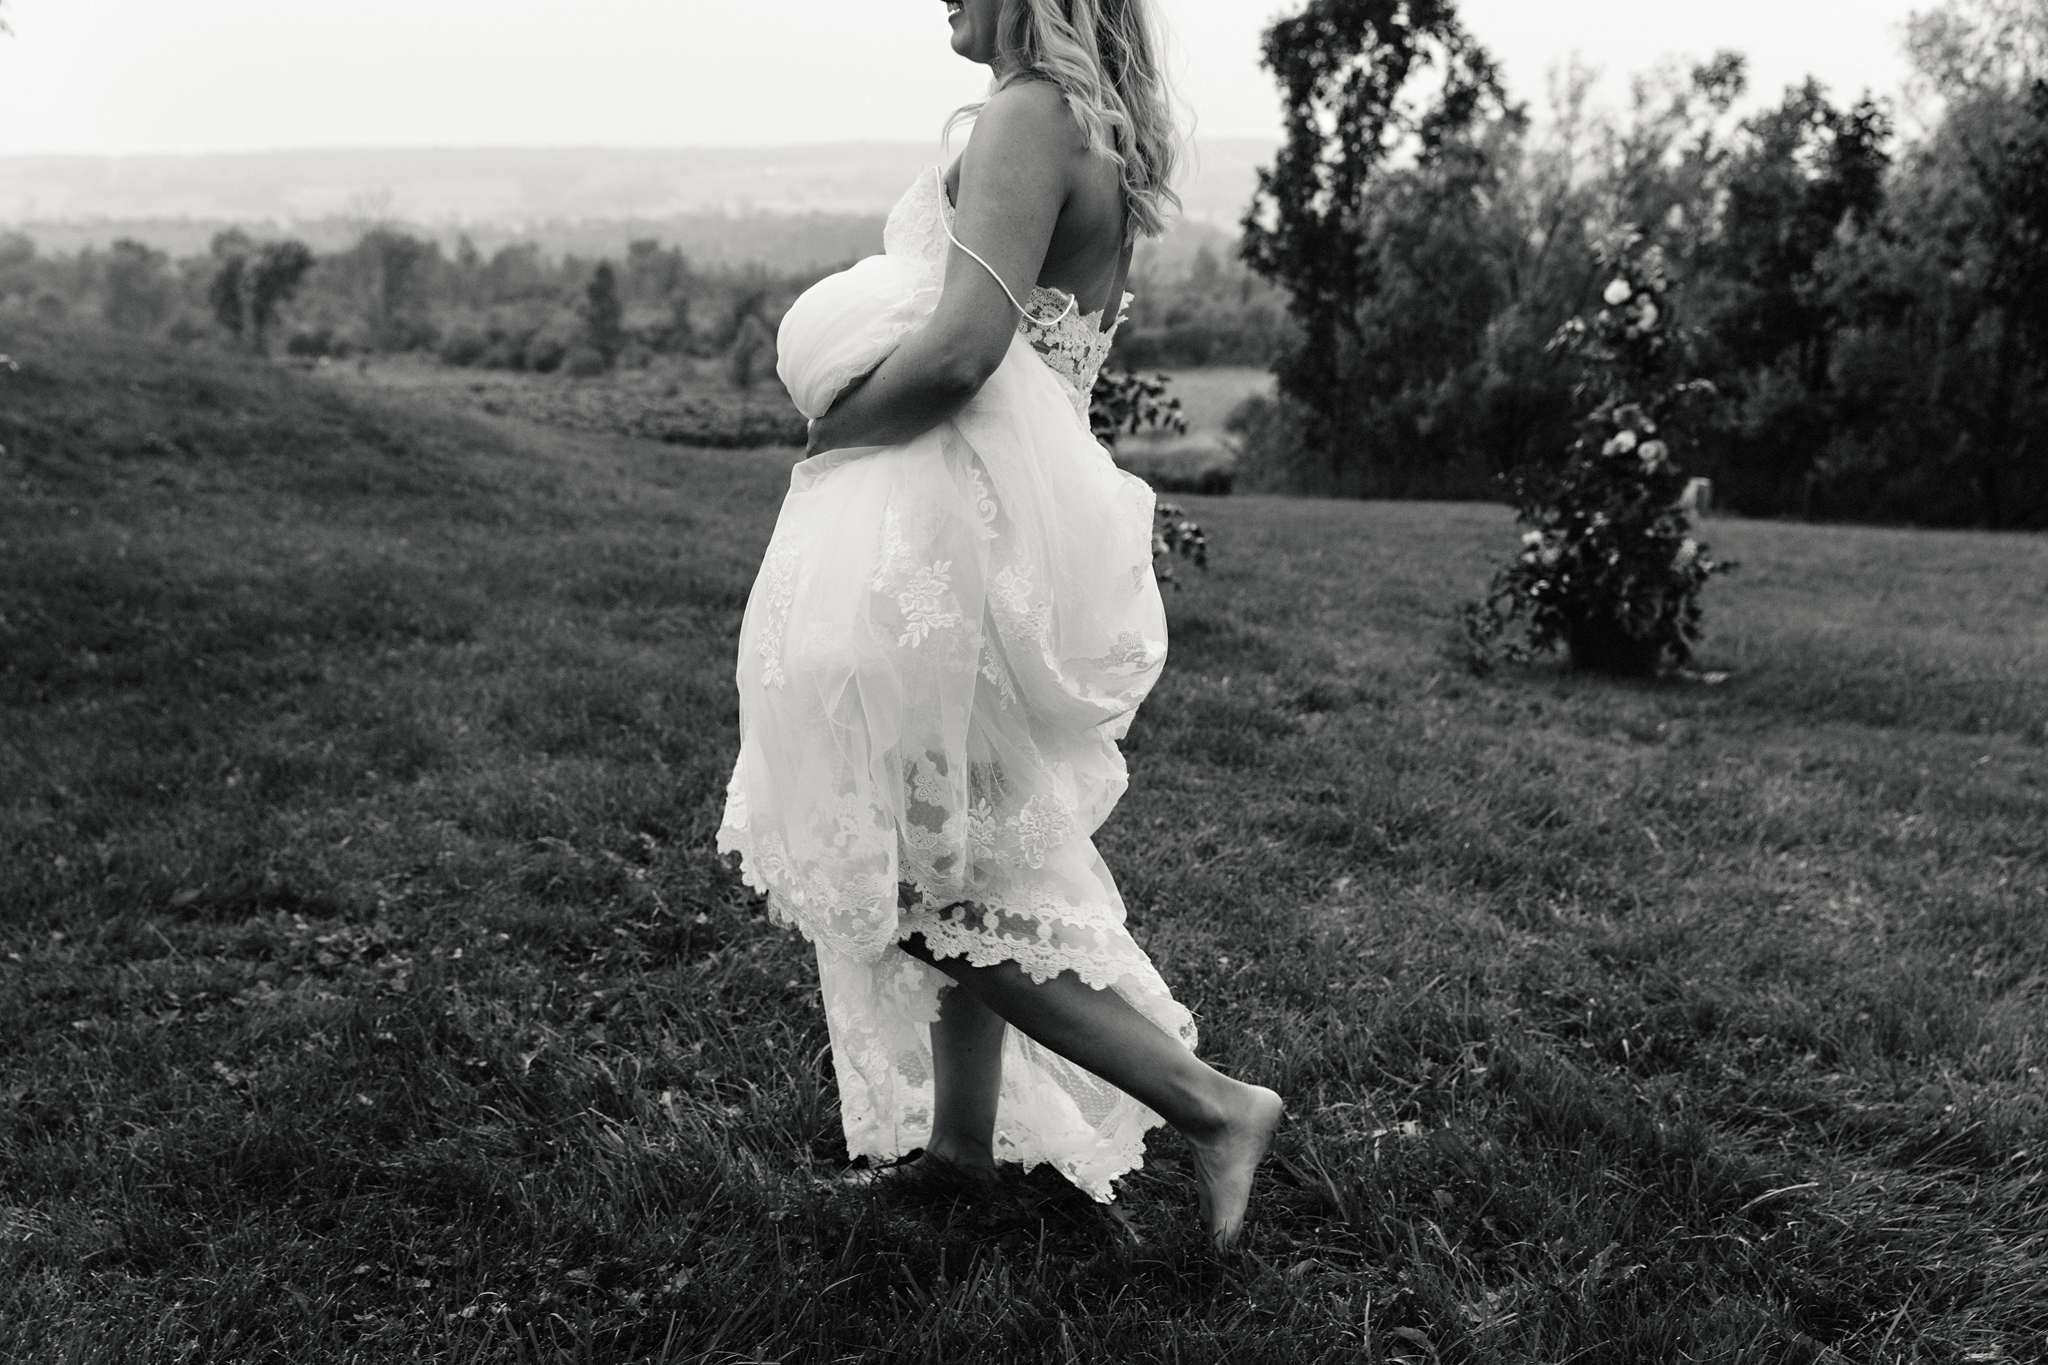 Bride walks barefoot in a field while holding her lace gown at C